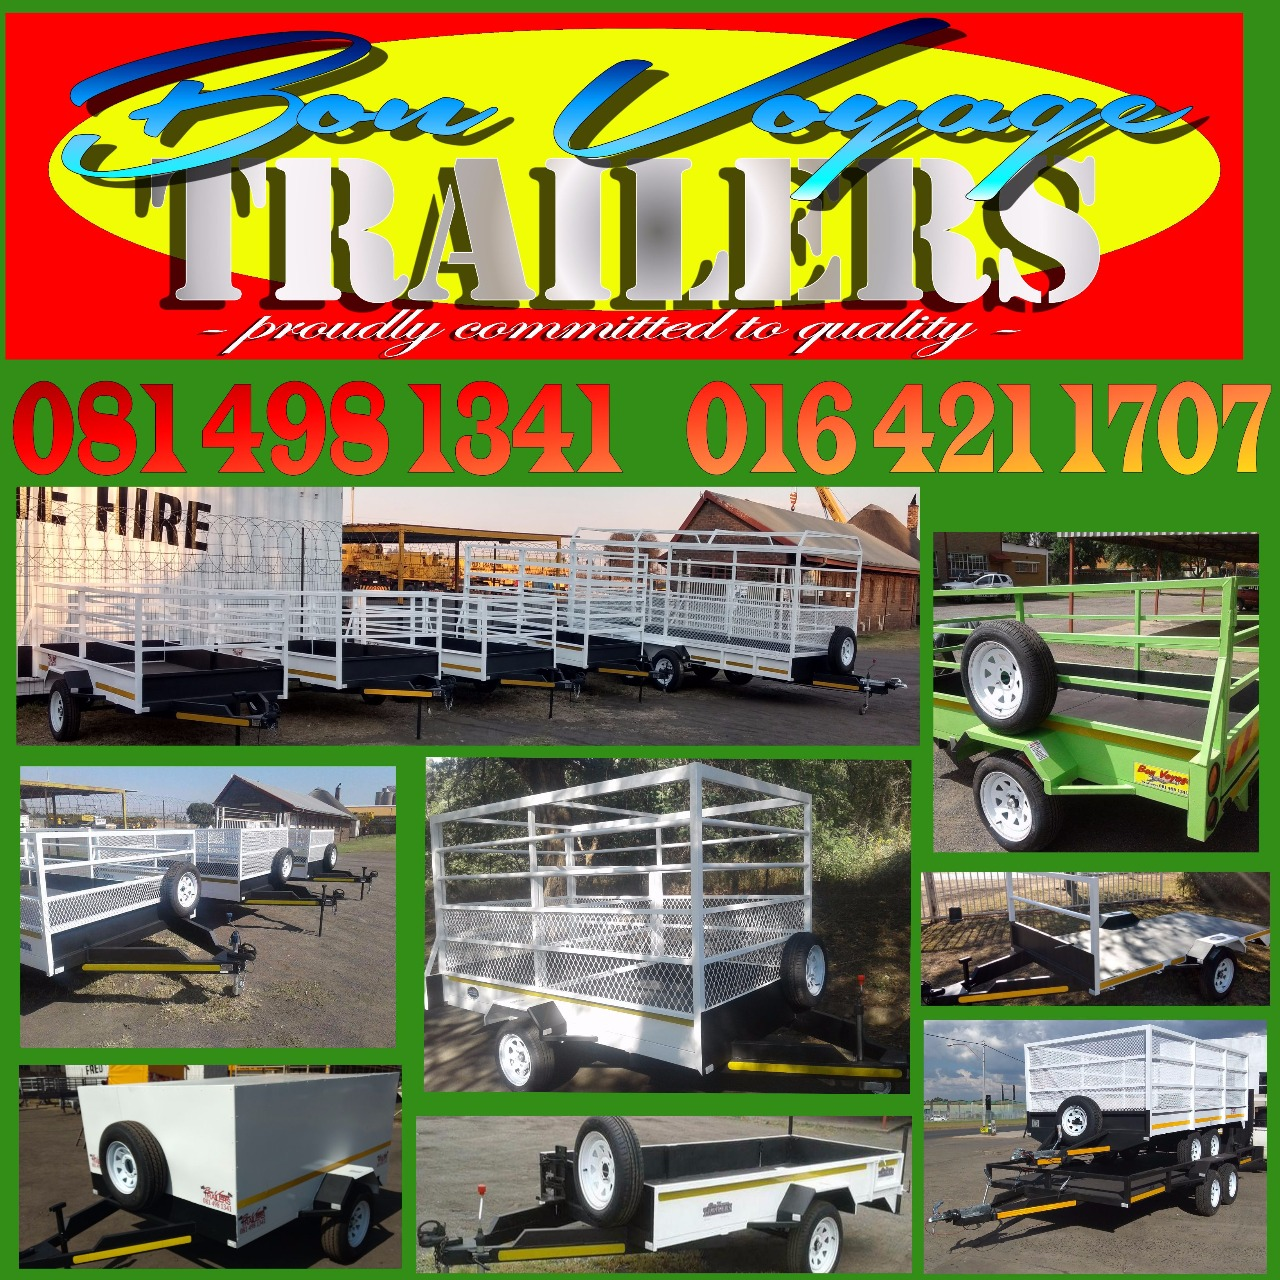 Bon Voyage Trailers - proudly committed to quality!